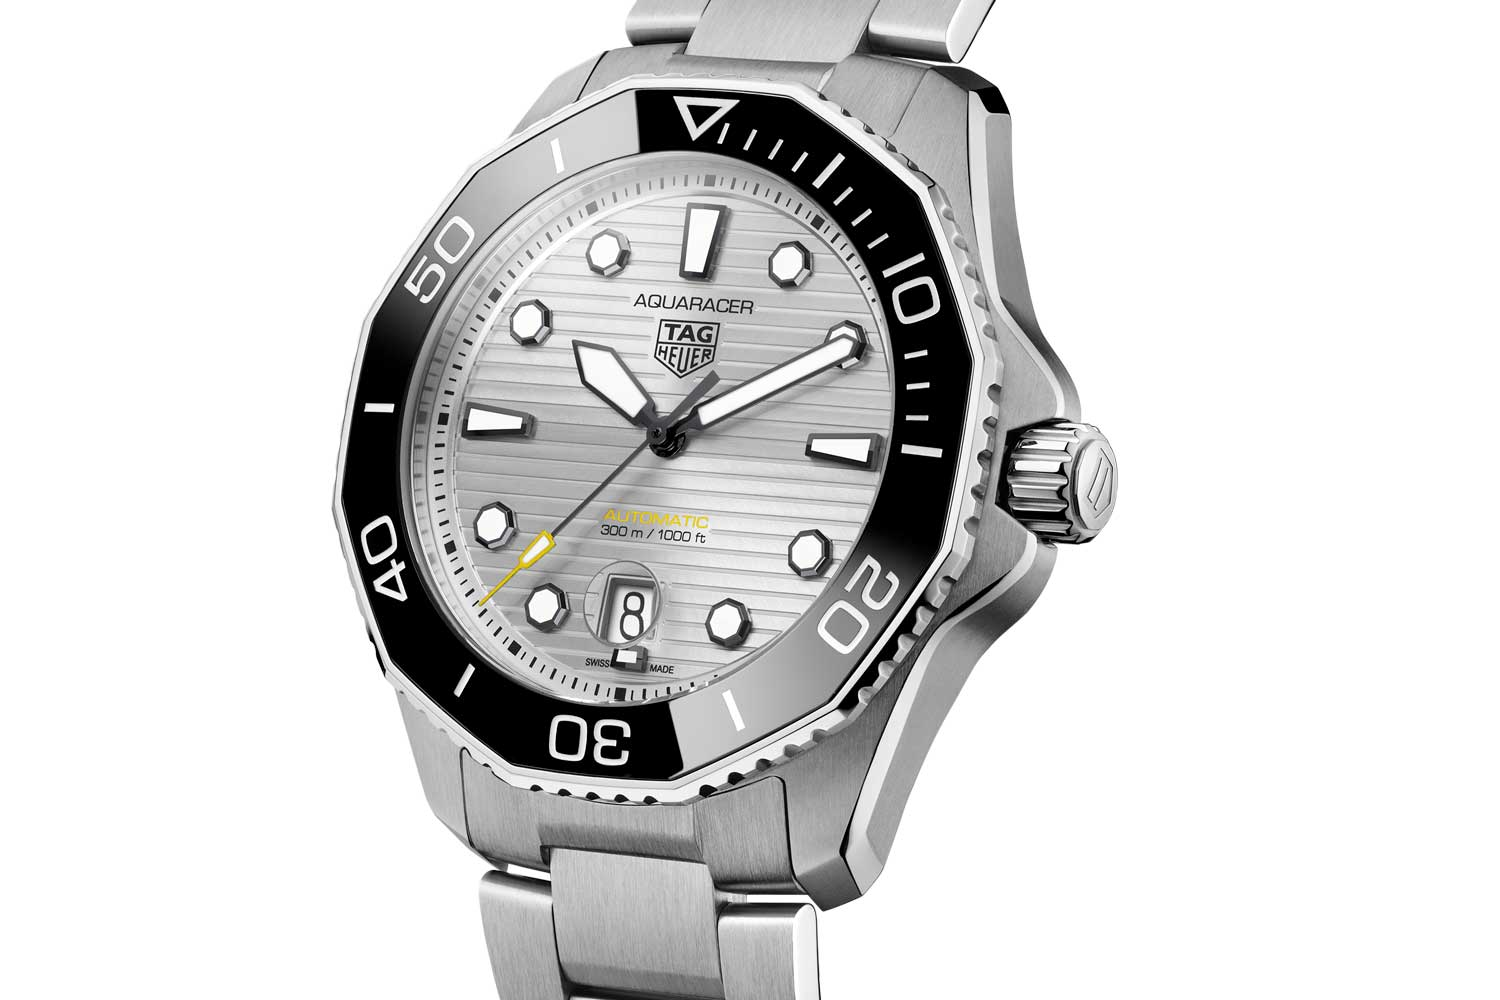 The Aquaracer with a silver dial has a glossy black ceramic bezel and matching hour marker for a high-contrast look.